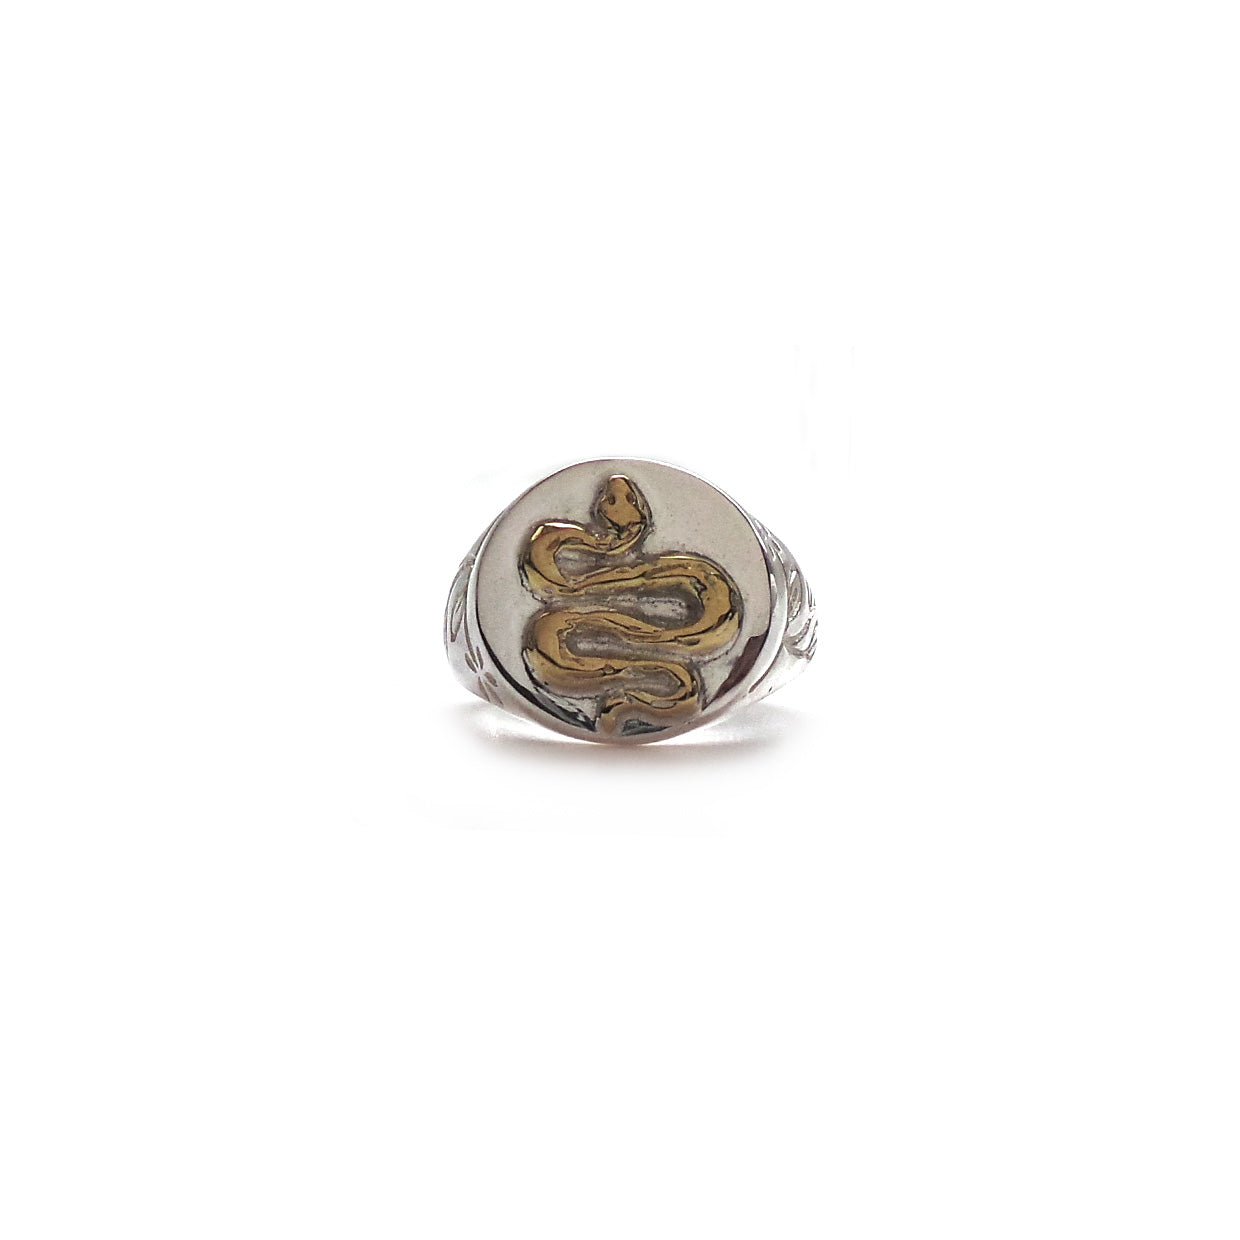 Hunt Of Hounds Serpent Signet Ring